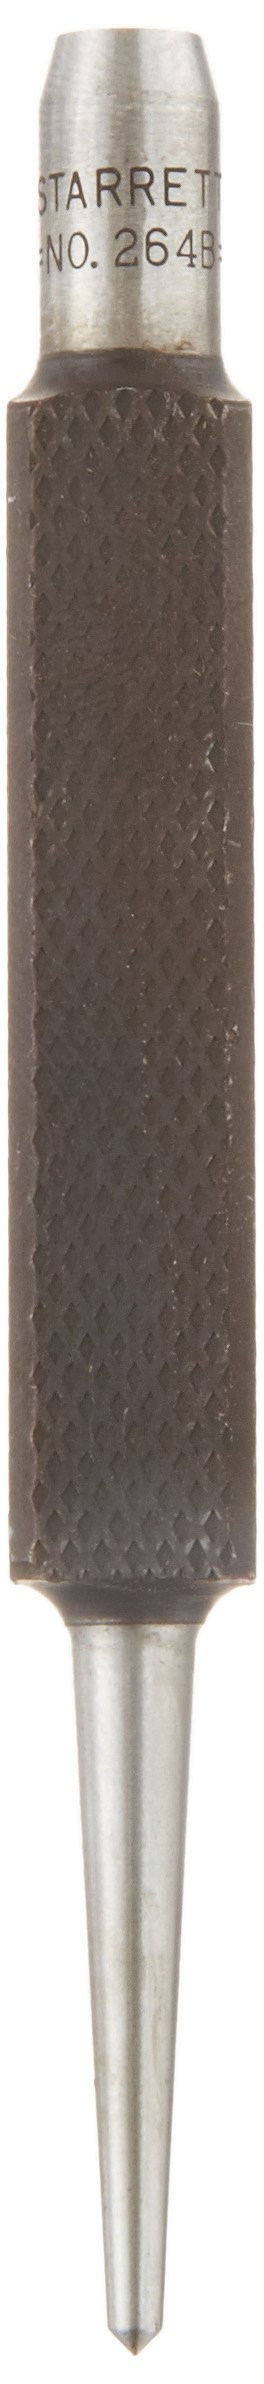 Starrett 264B Center Punch With Square Shank, 3-1/2'' Length, 5/64'' Tapered Point Diameter, 3/8'' Square Thickness